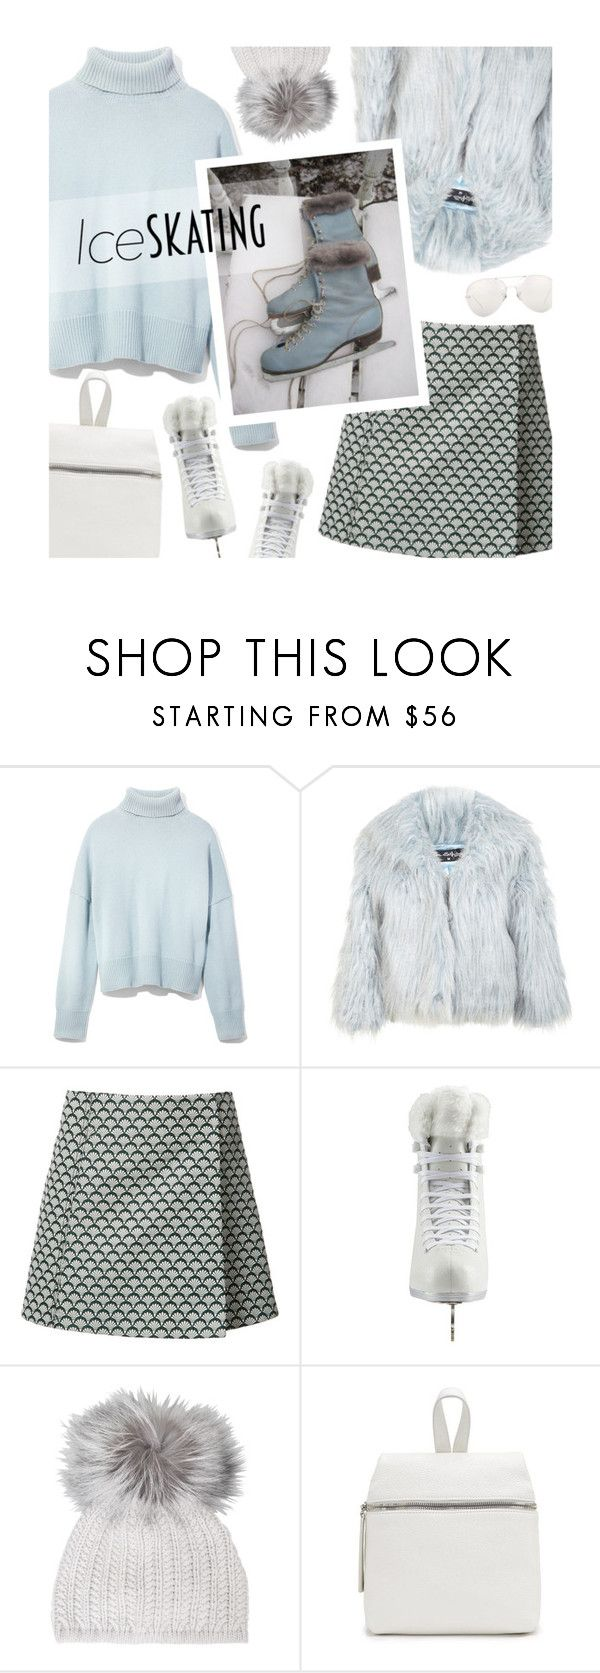 """""""Skate Date: Ice Skating Outfit"""" by magdafunk ❤ liked on Polyvore featuring interior, interiors, interior design, home, home decor, interior decorating, Frame, Miss Selfridge, Misha Nonoo and Artistique"""